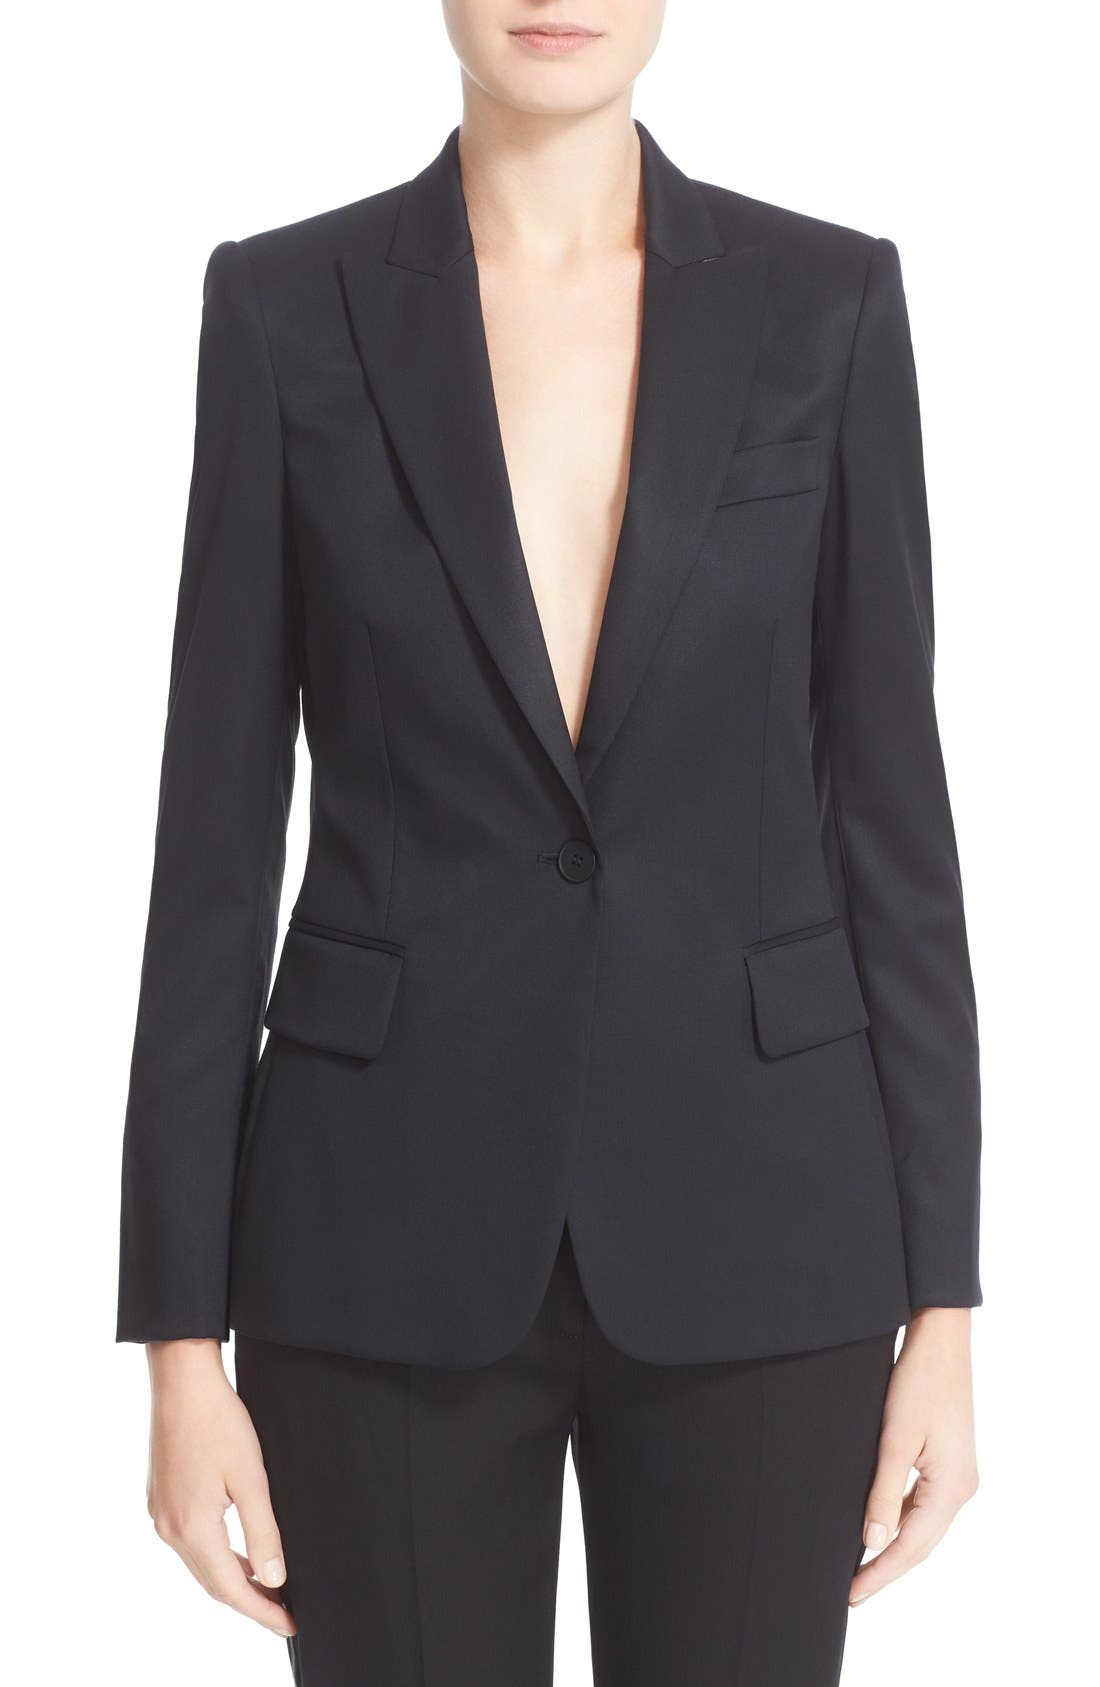 Stella McCartney PS1 One-Button Wool Jacket (Nordstrom Exclusive)